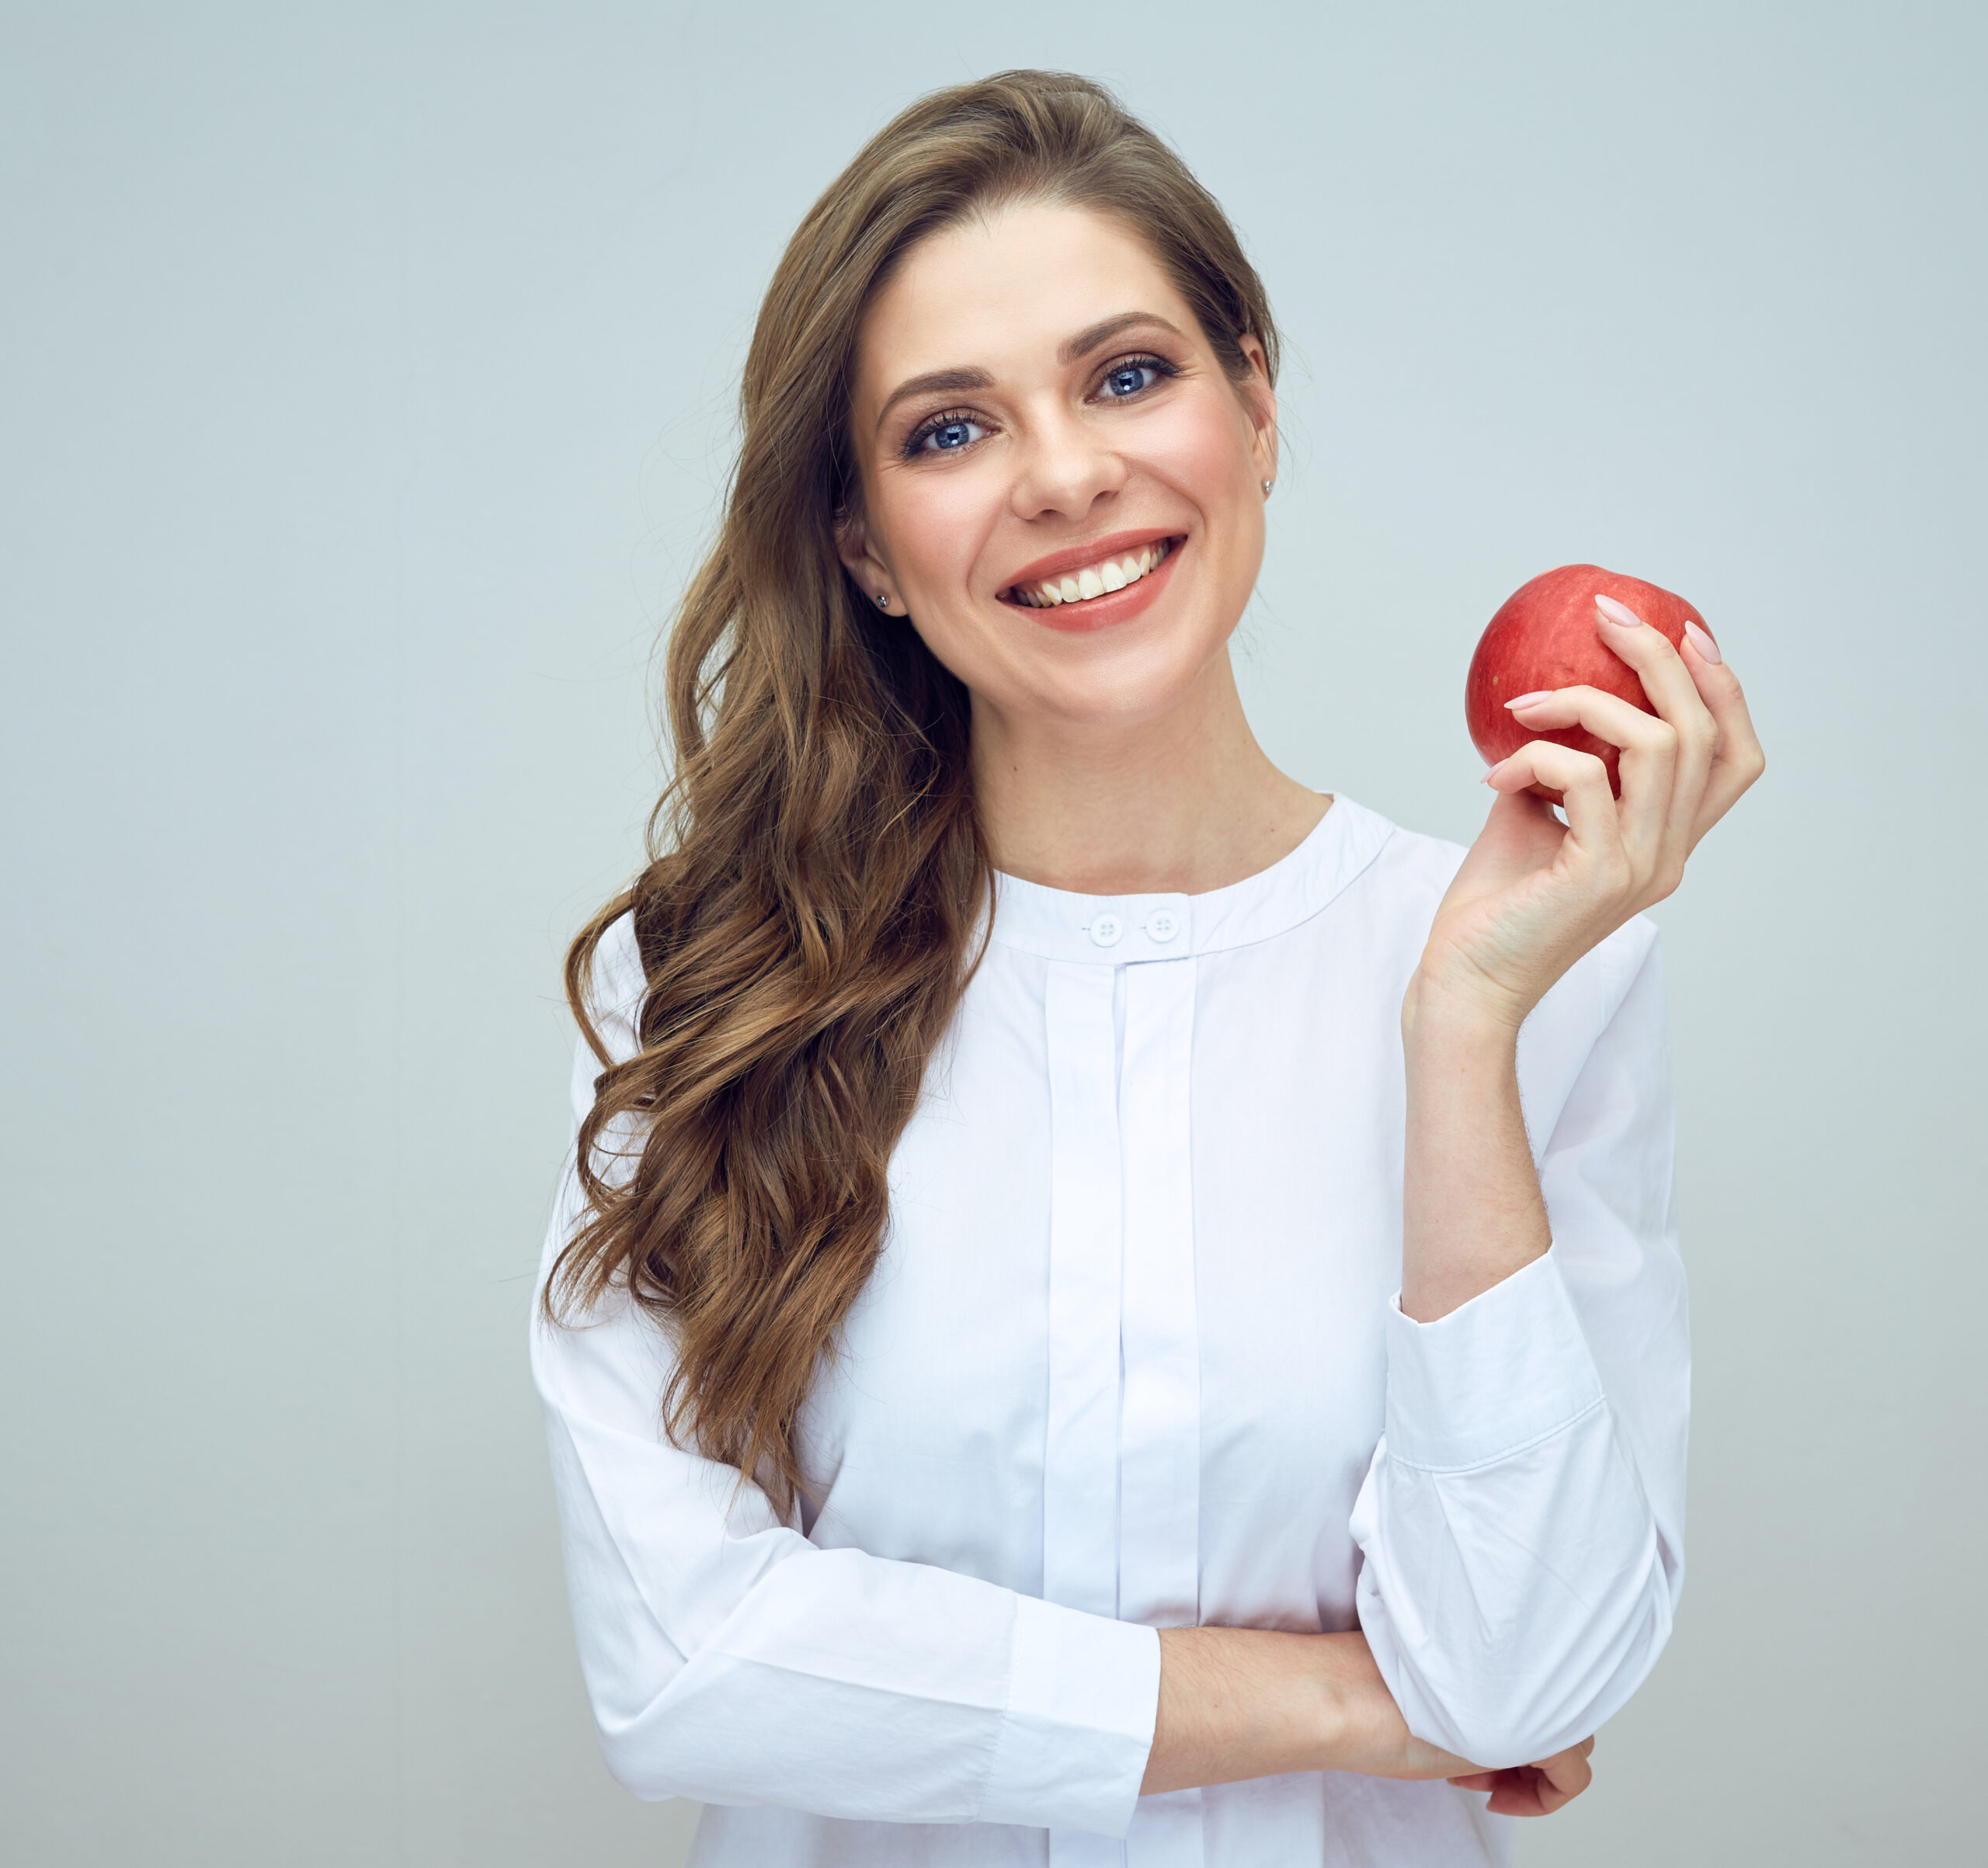 woman with toothy smile wearing white shirt holding red apple. isolated studio portrait. diet and teeth